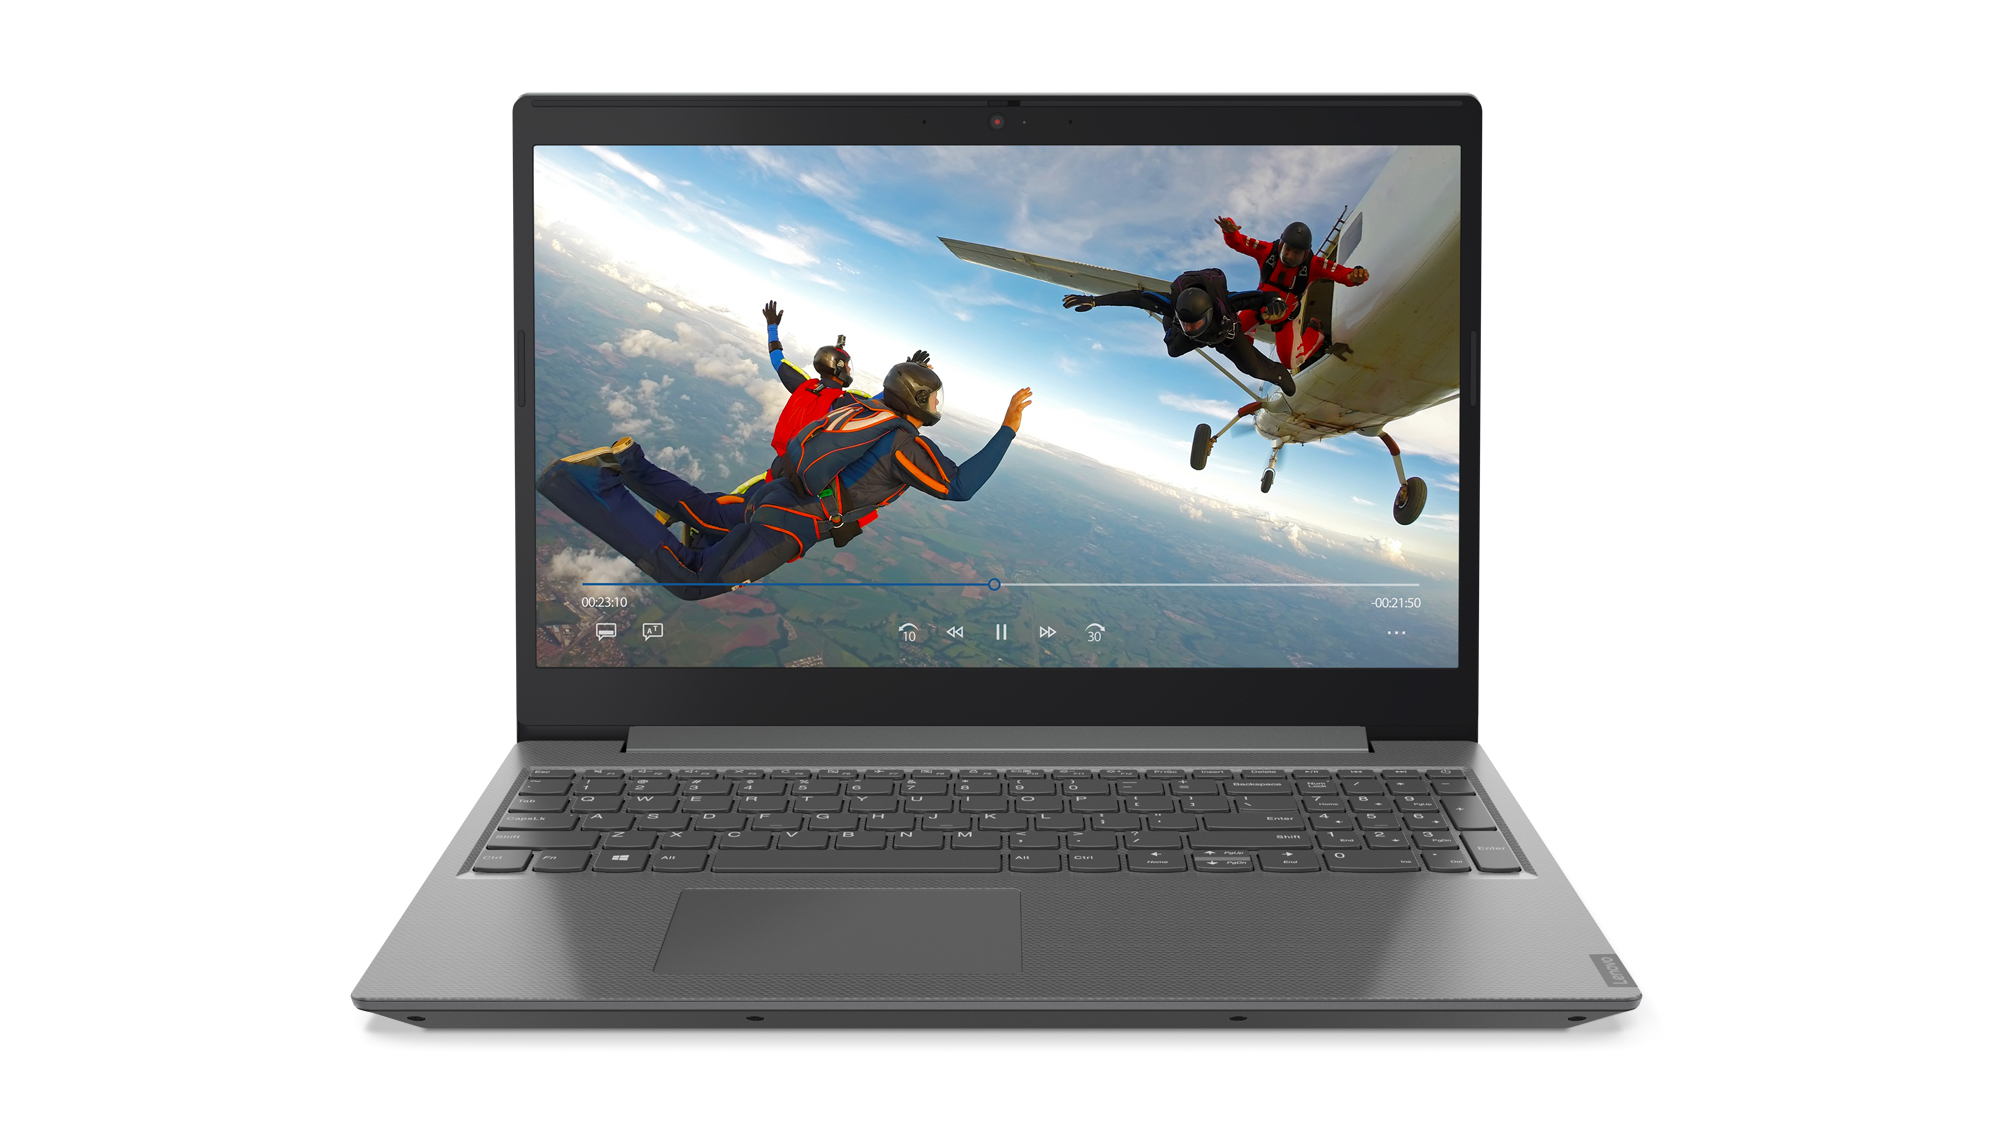 Lenovo V155 Grey Notebook 39.6 cm (15.6